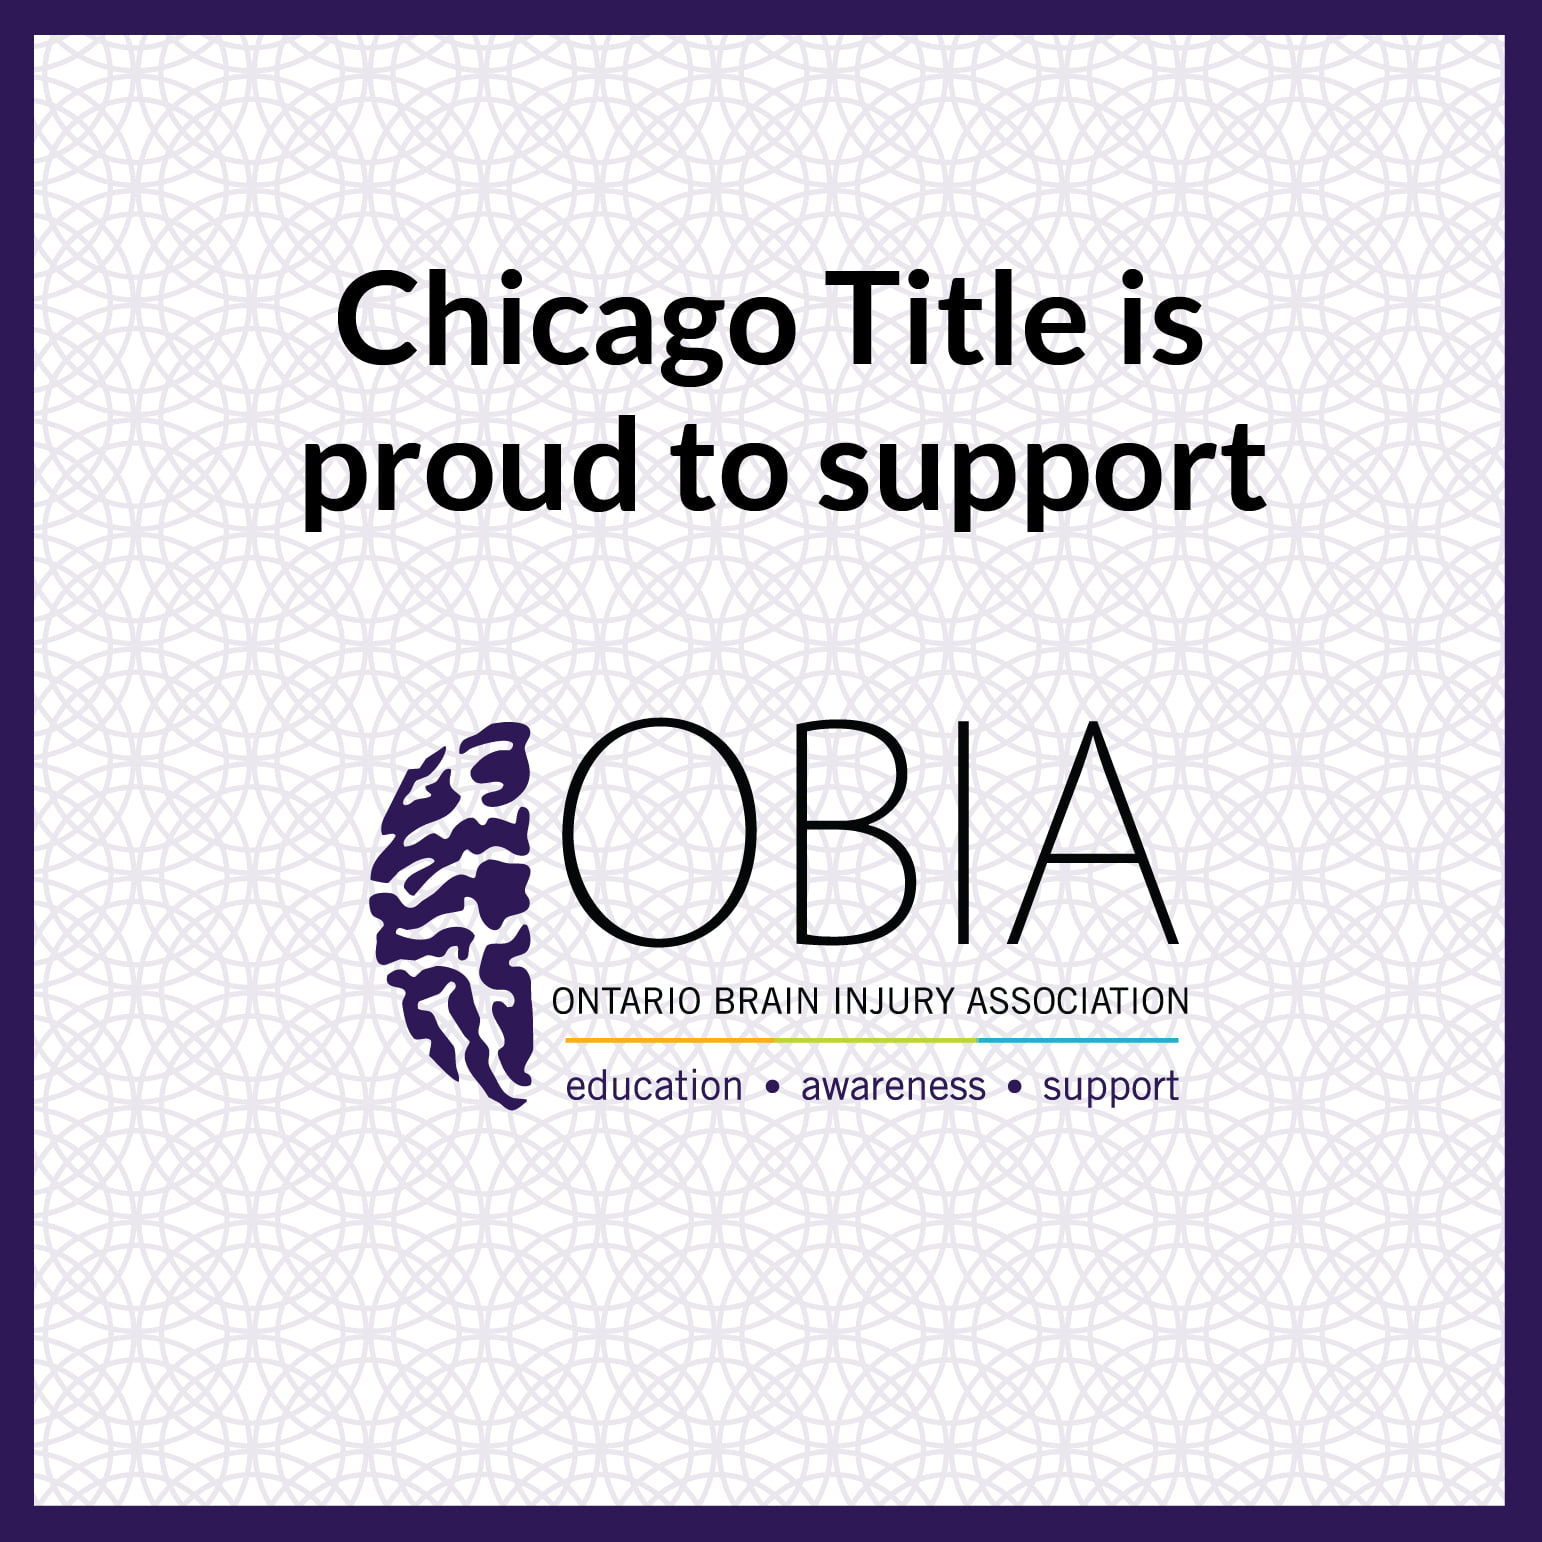 Chicago Title is Proud to sponsor OBIA